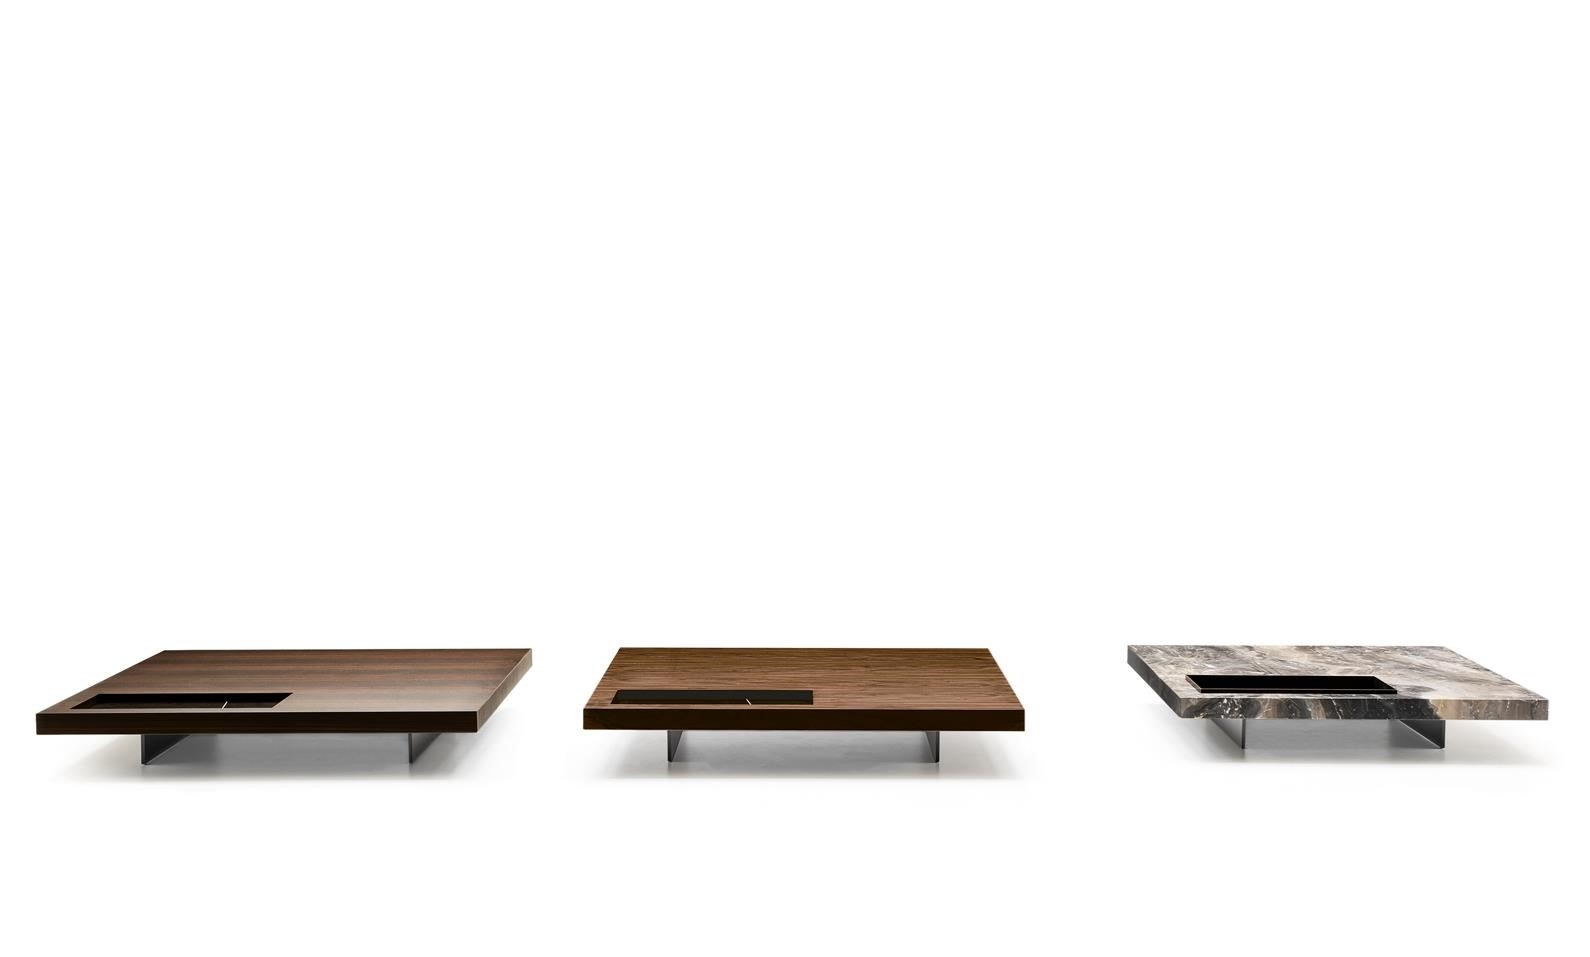 z_boteco-coffee-table-scont-01.jpg